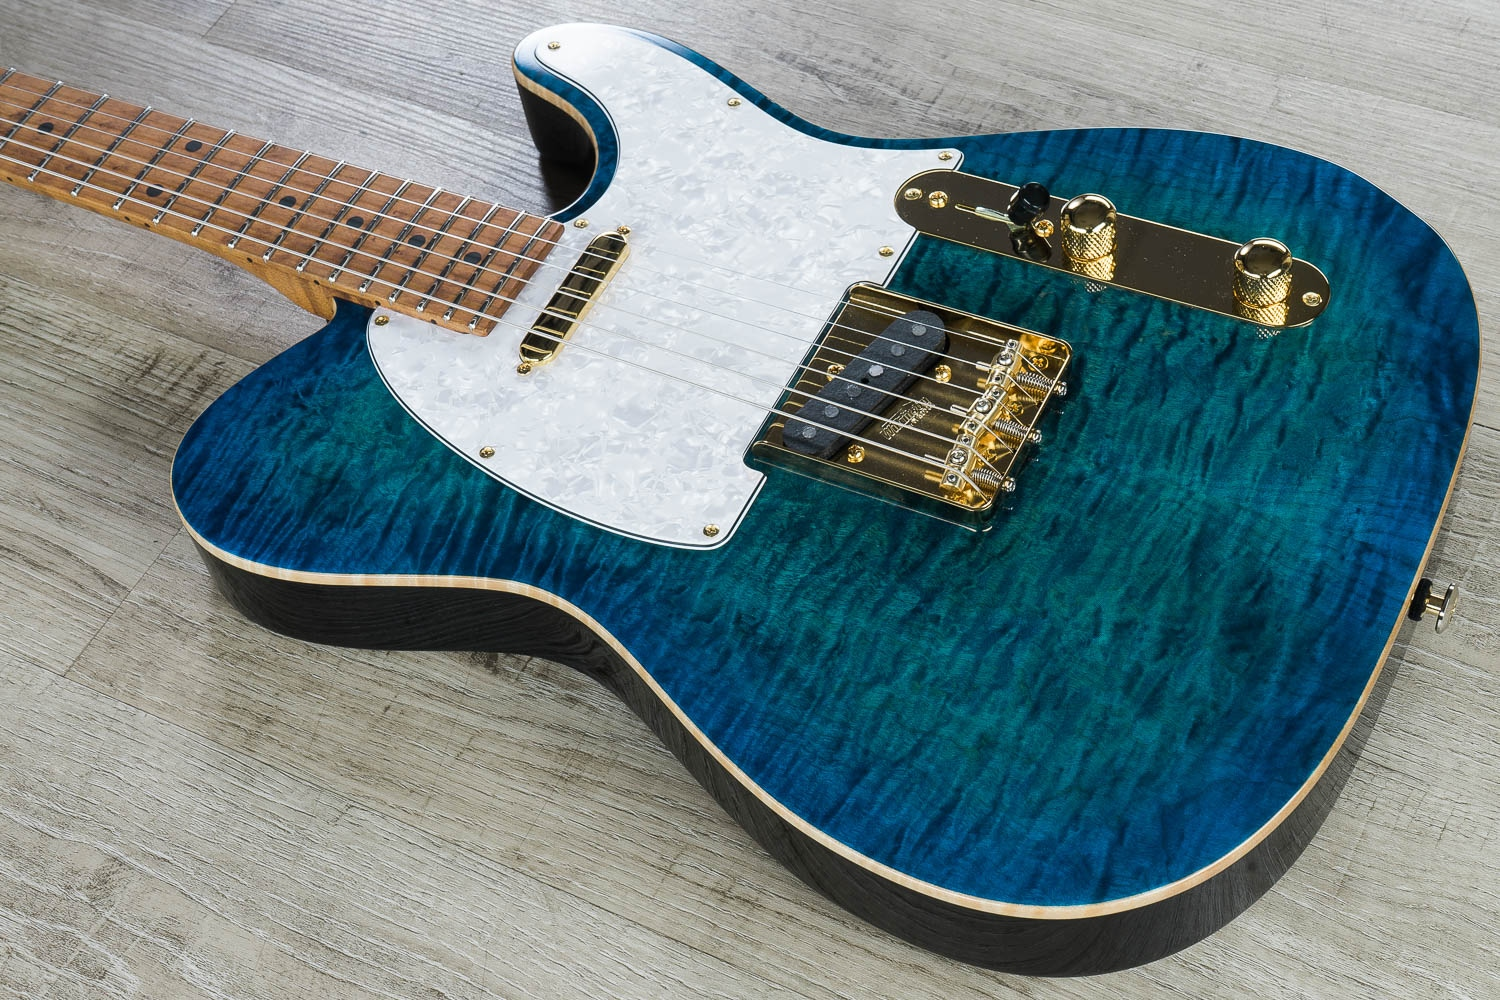 Suhr Classic T Deluxe Guitar Aqua Blue Burst Flame Maple Top Roasted Birdseye Maple Neck And Fretboard